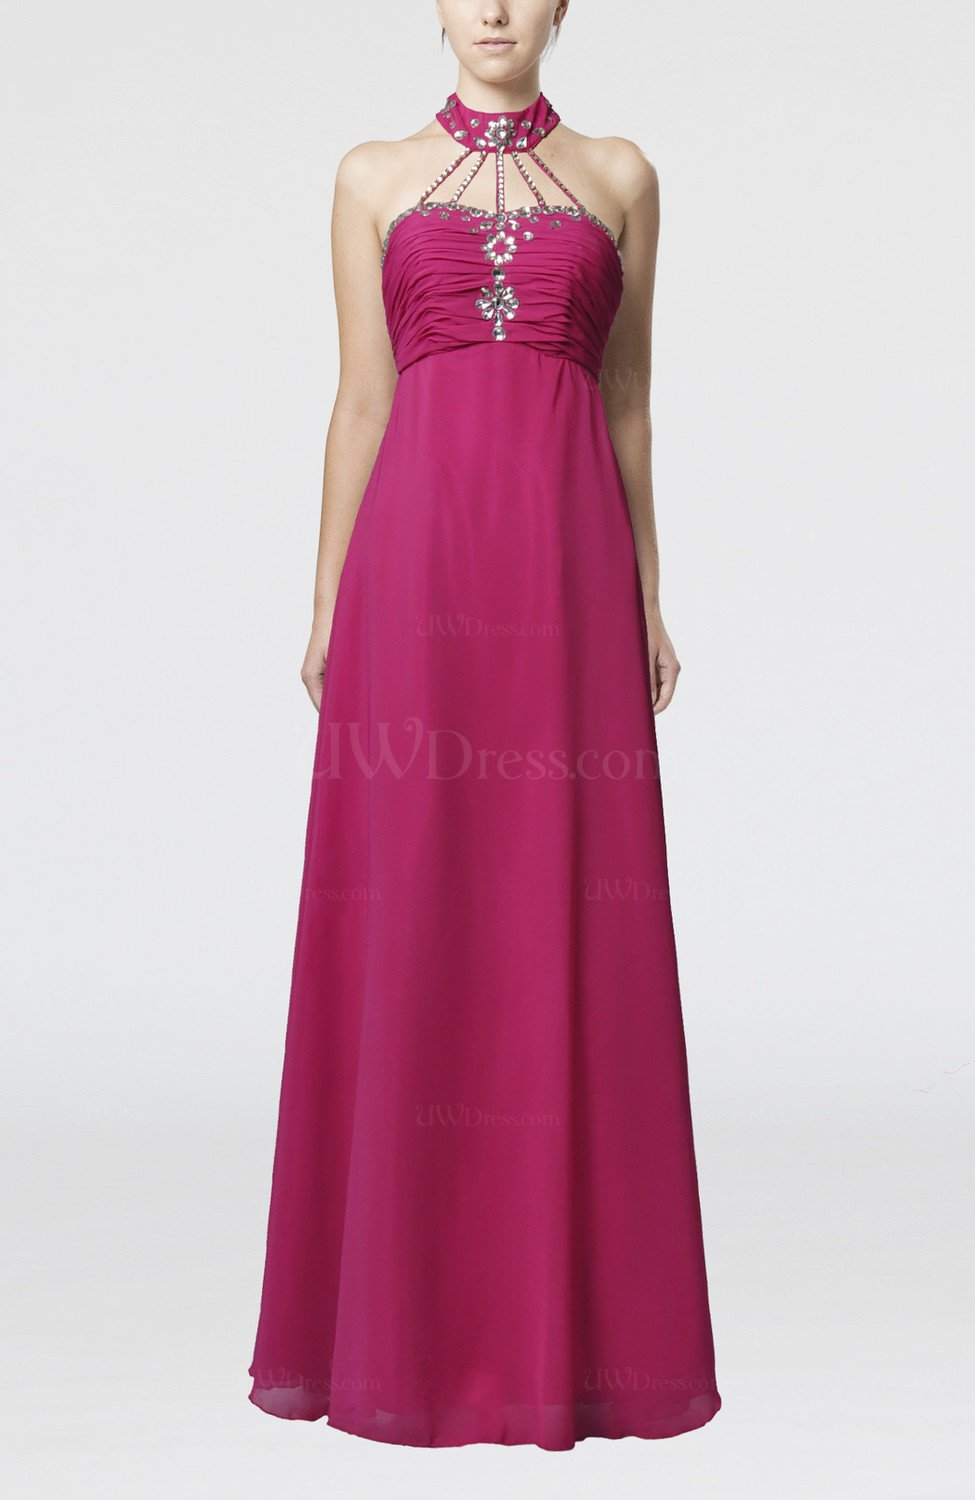 Hot pink elegant empire sleeveless backless paillette for Backless wedding guest dresses